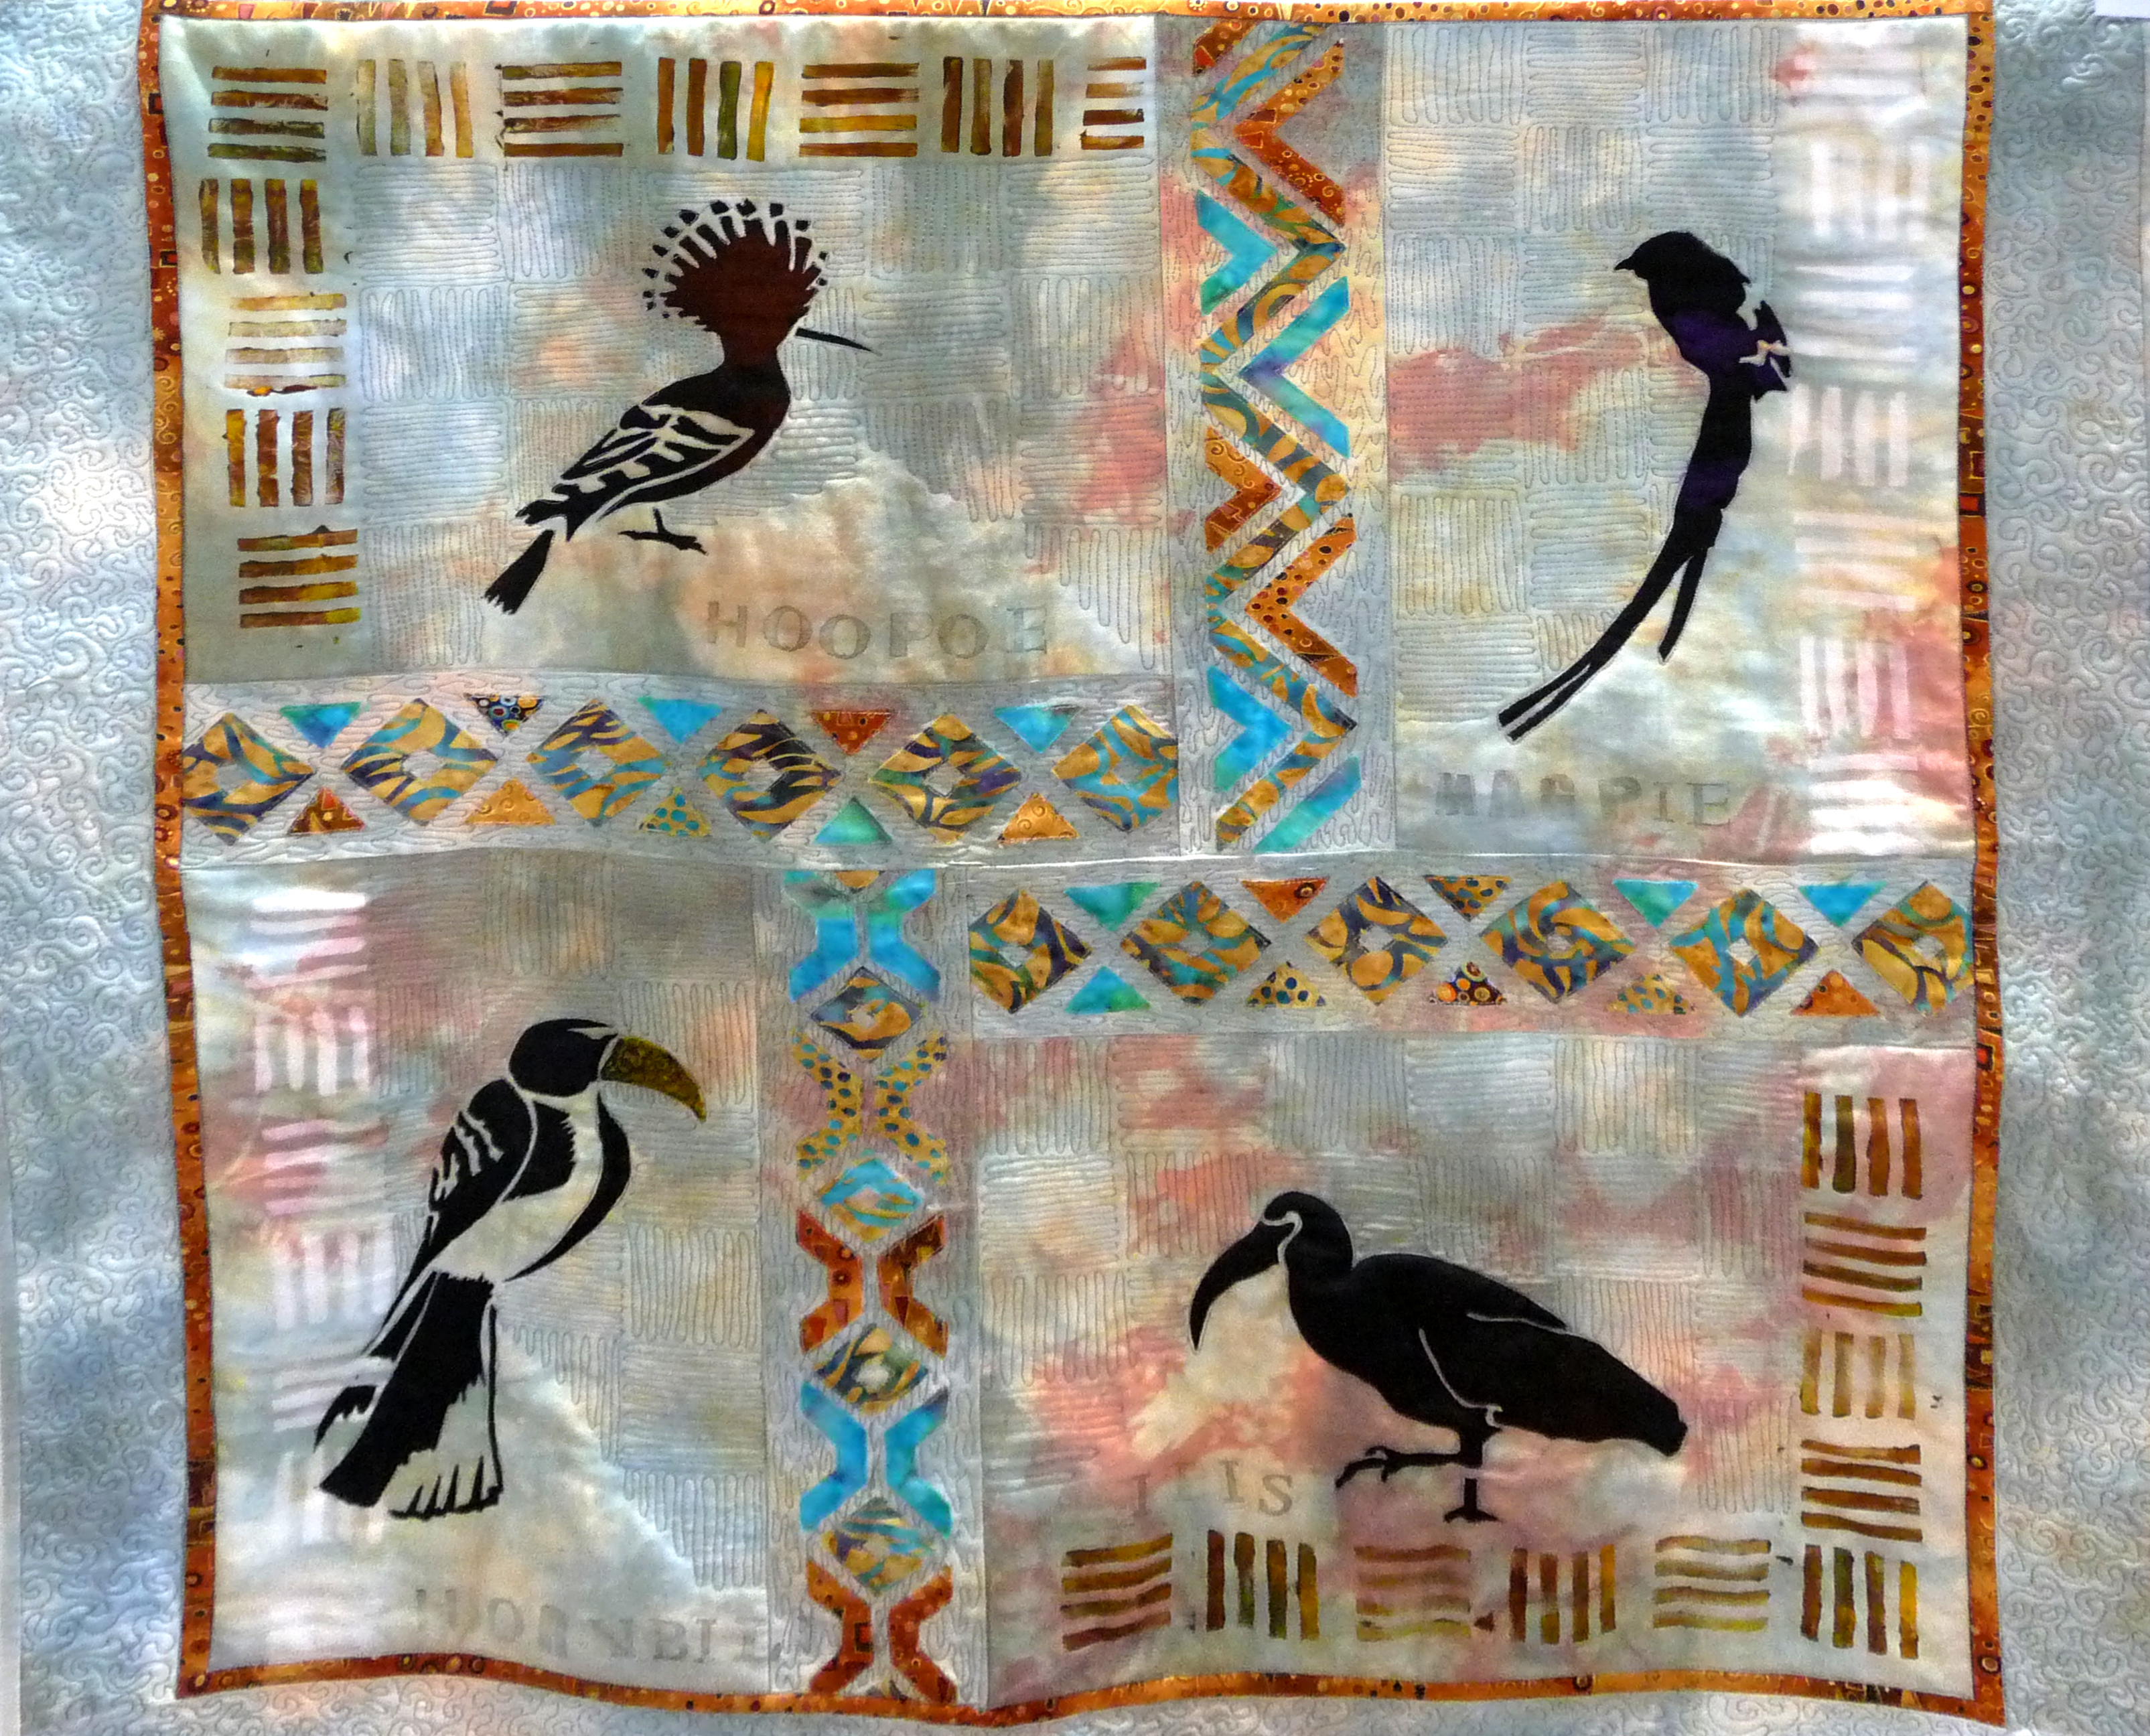 OUT OF AFRICA QUILT by Tina Watkins, hand dyed fabric, screen and hand printed